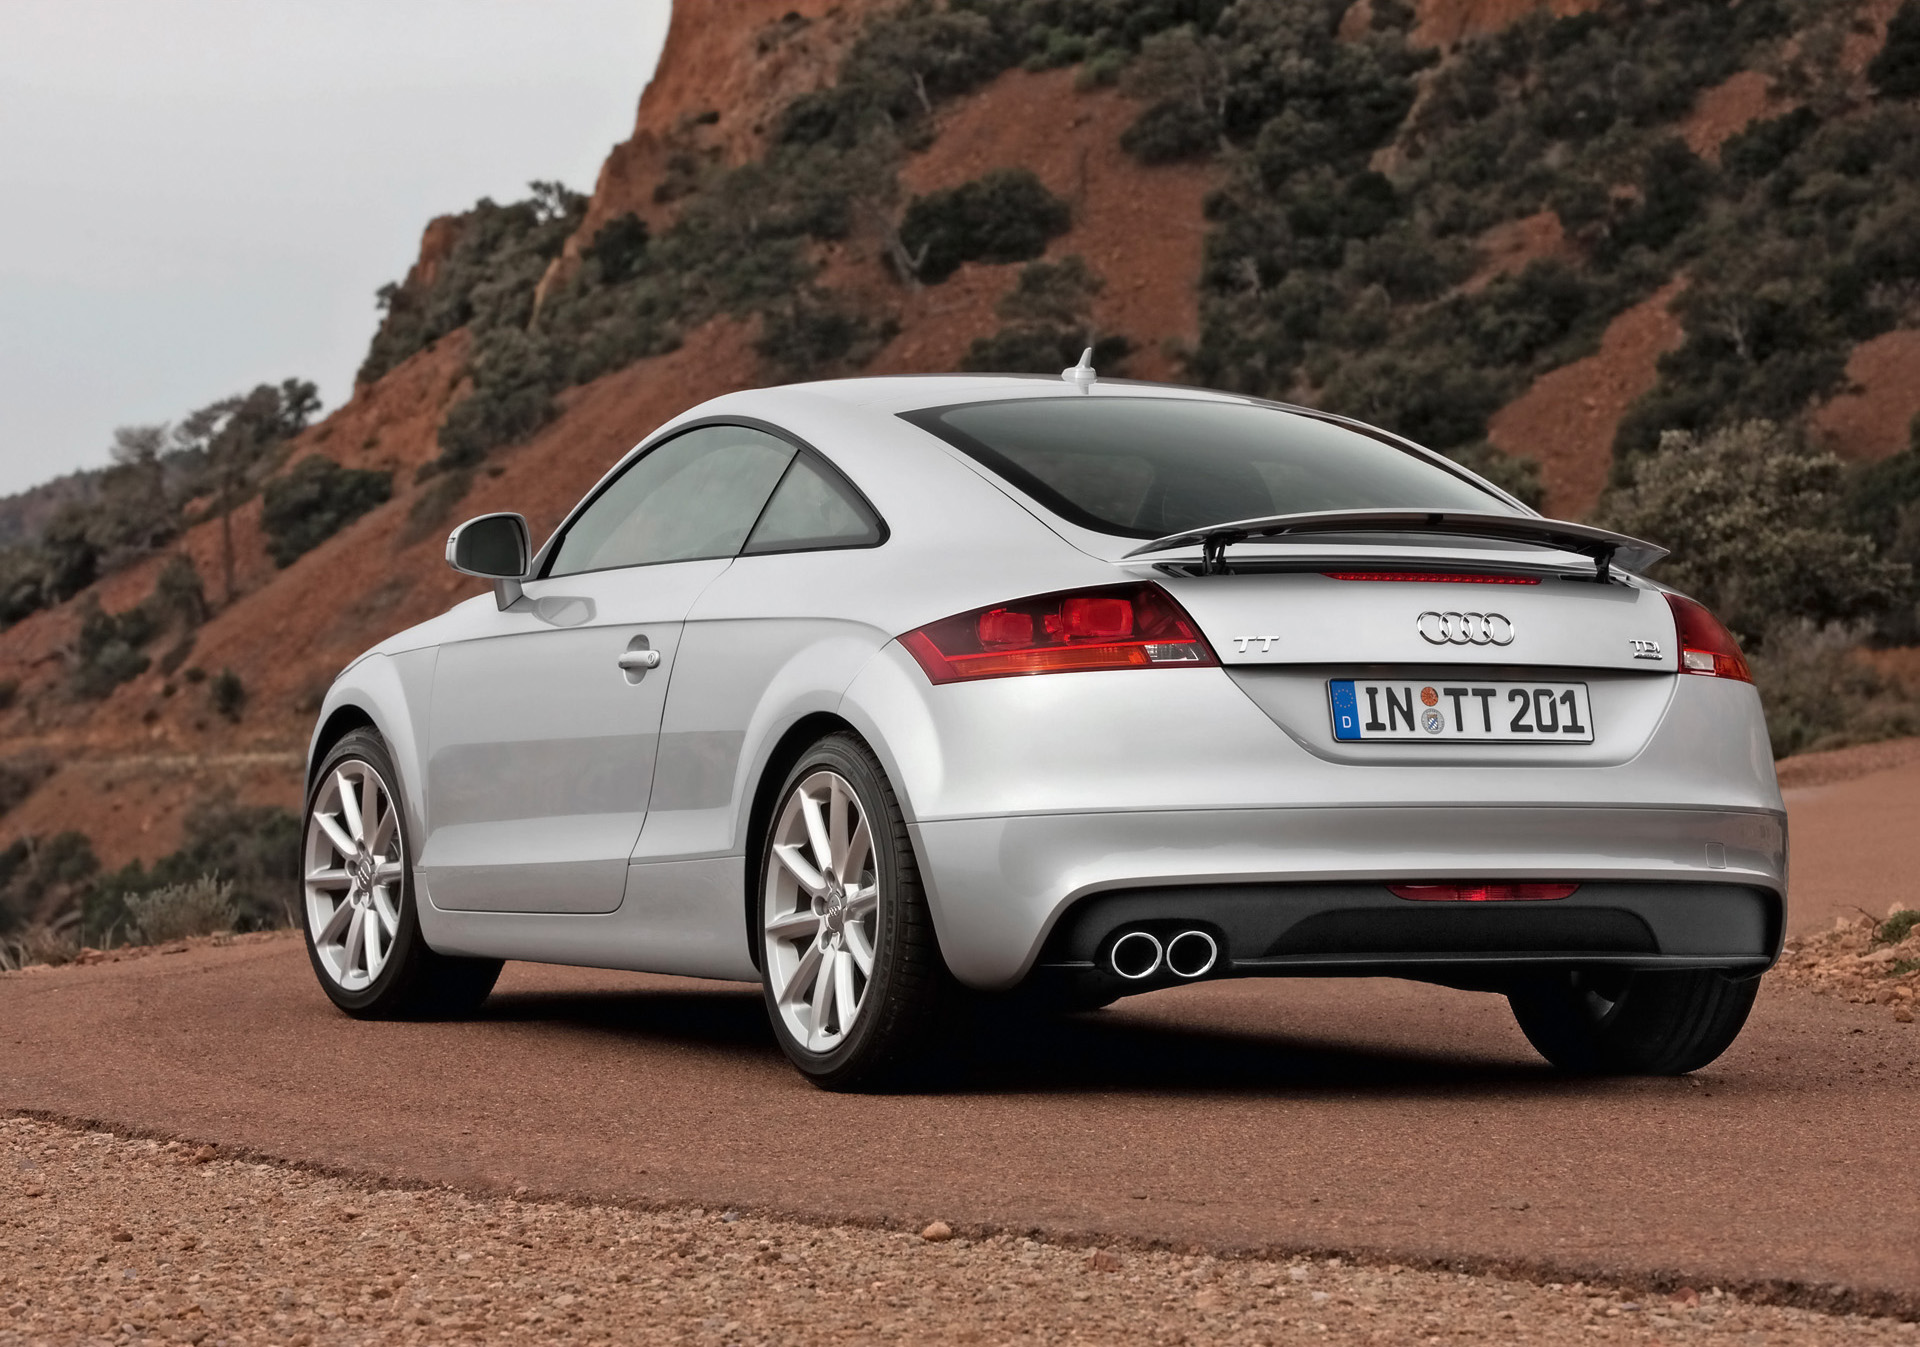 2011 audi tt coupe specs pictures engine review. Black Bedroom Furniture Sets. Home Design Ideas